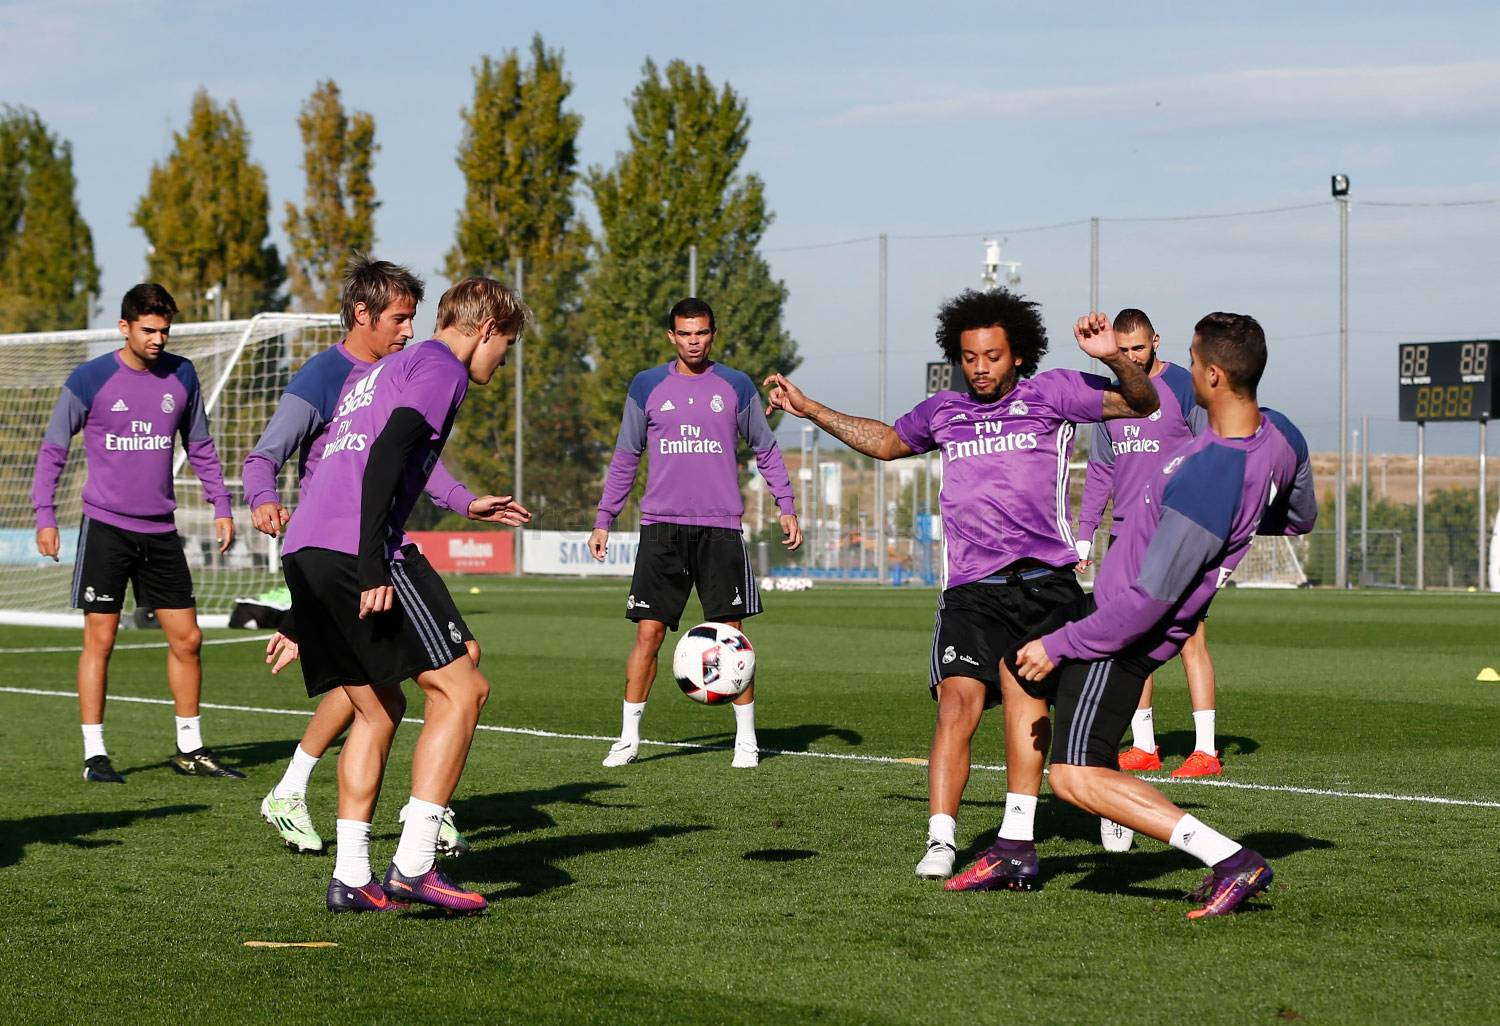 Real Madrid - Entrenamiento del Real Madrid - 25-10-2016